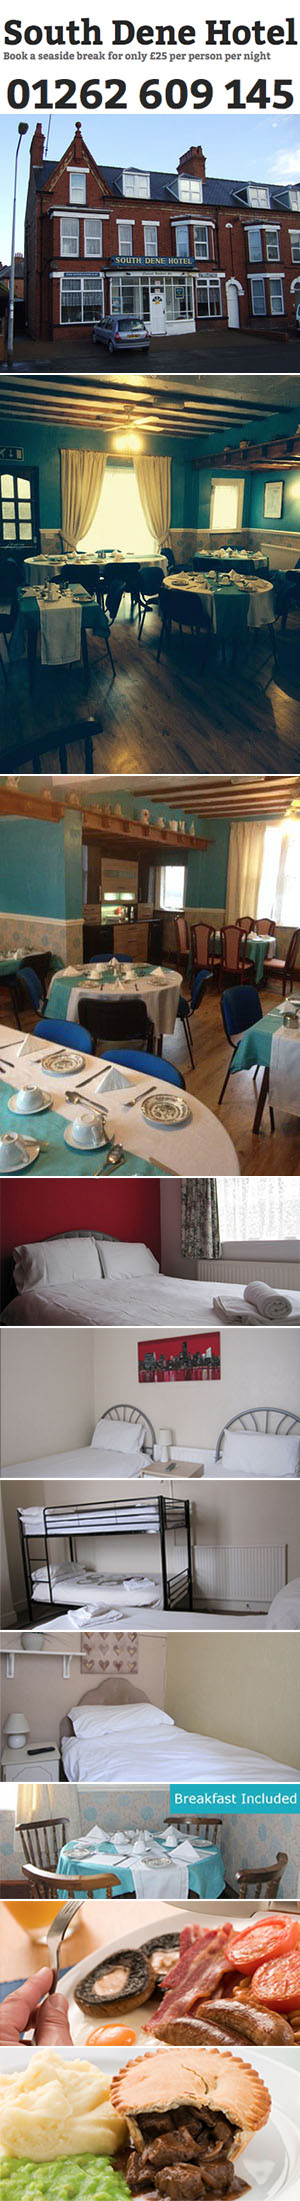 South Dene Hotel | Bridlington